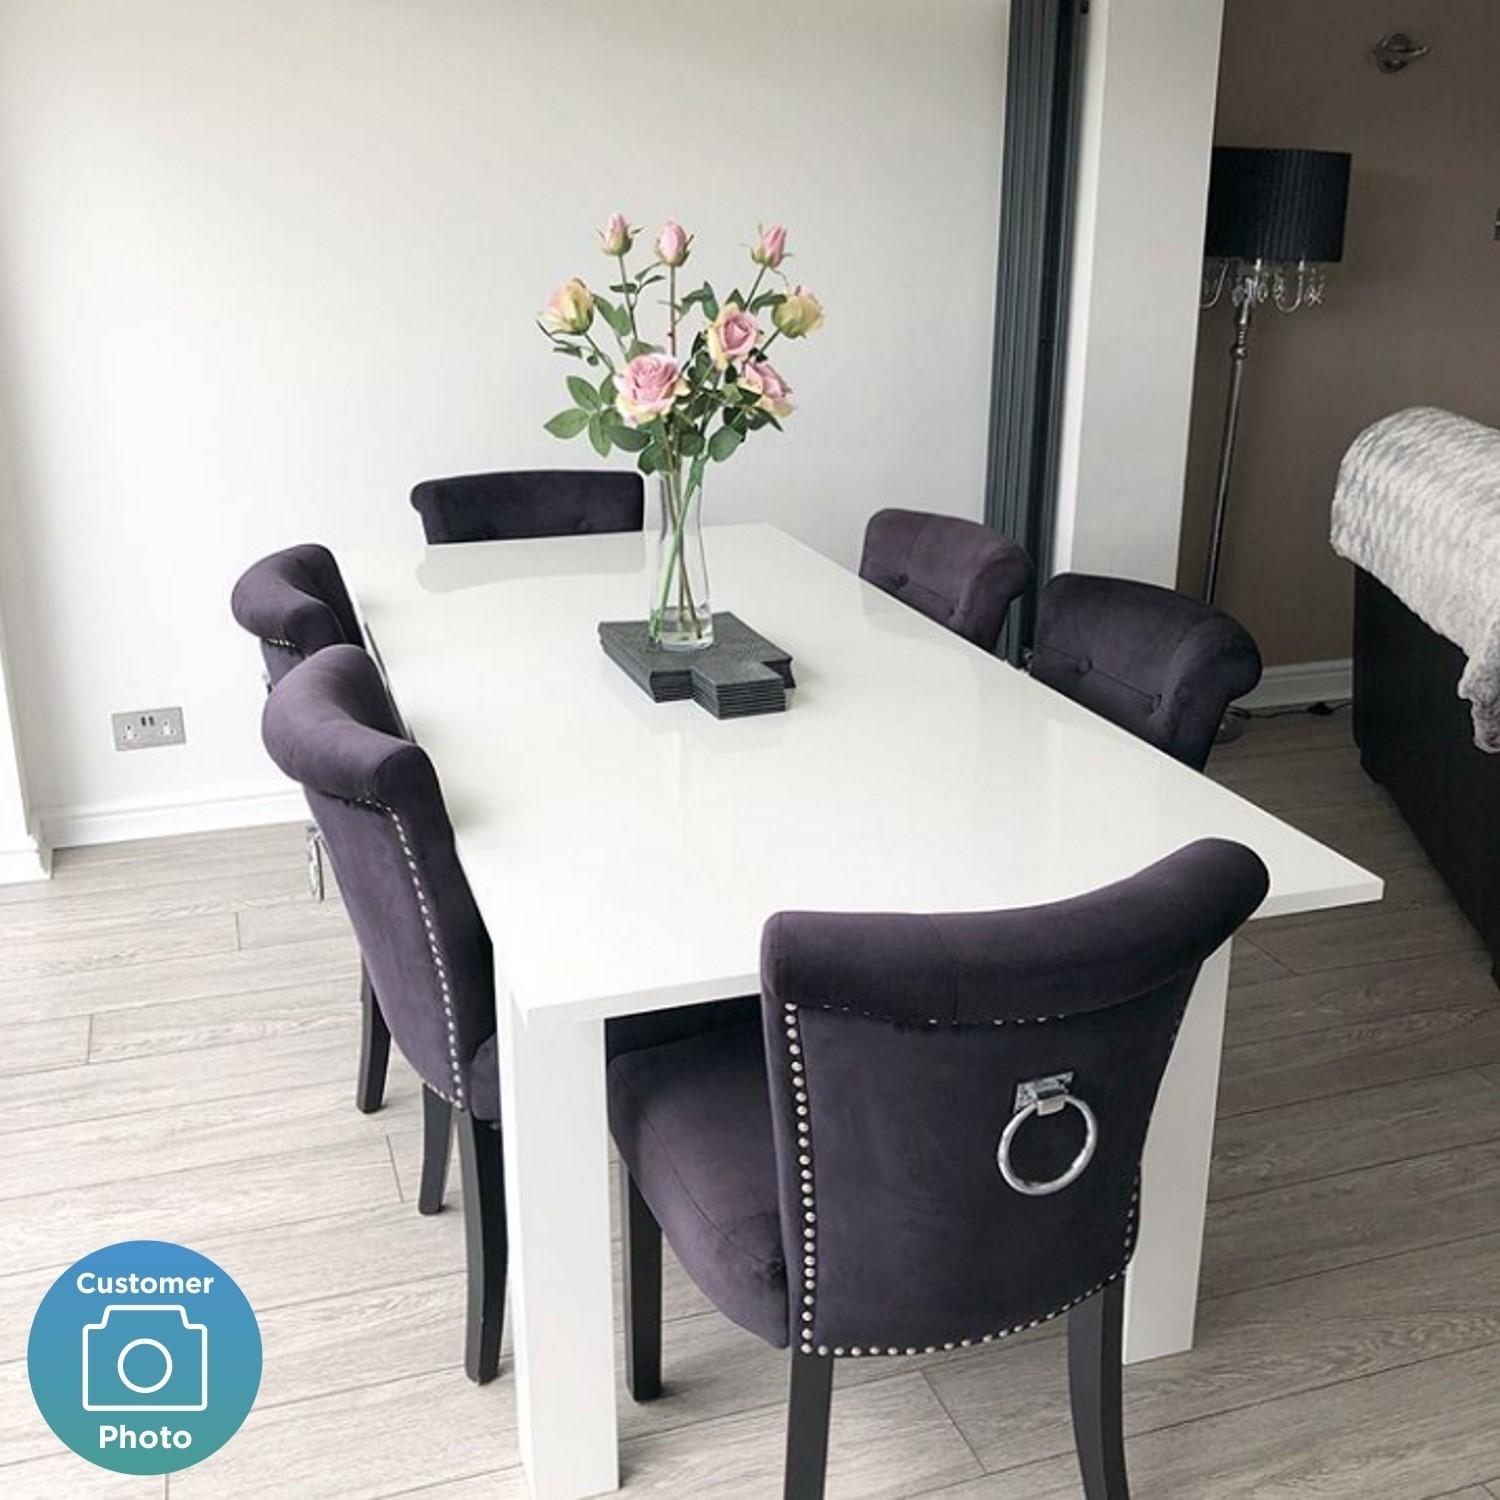 Swell White High Gloss Dining Table 6 Seater Extendable Vivienne Ncnpc Chair Design For Home Ncnpcorg